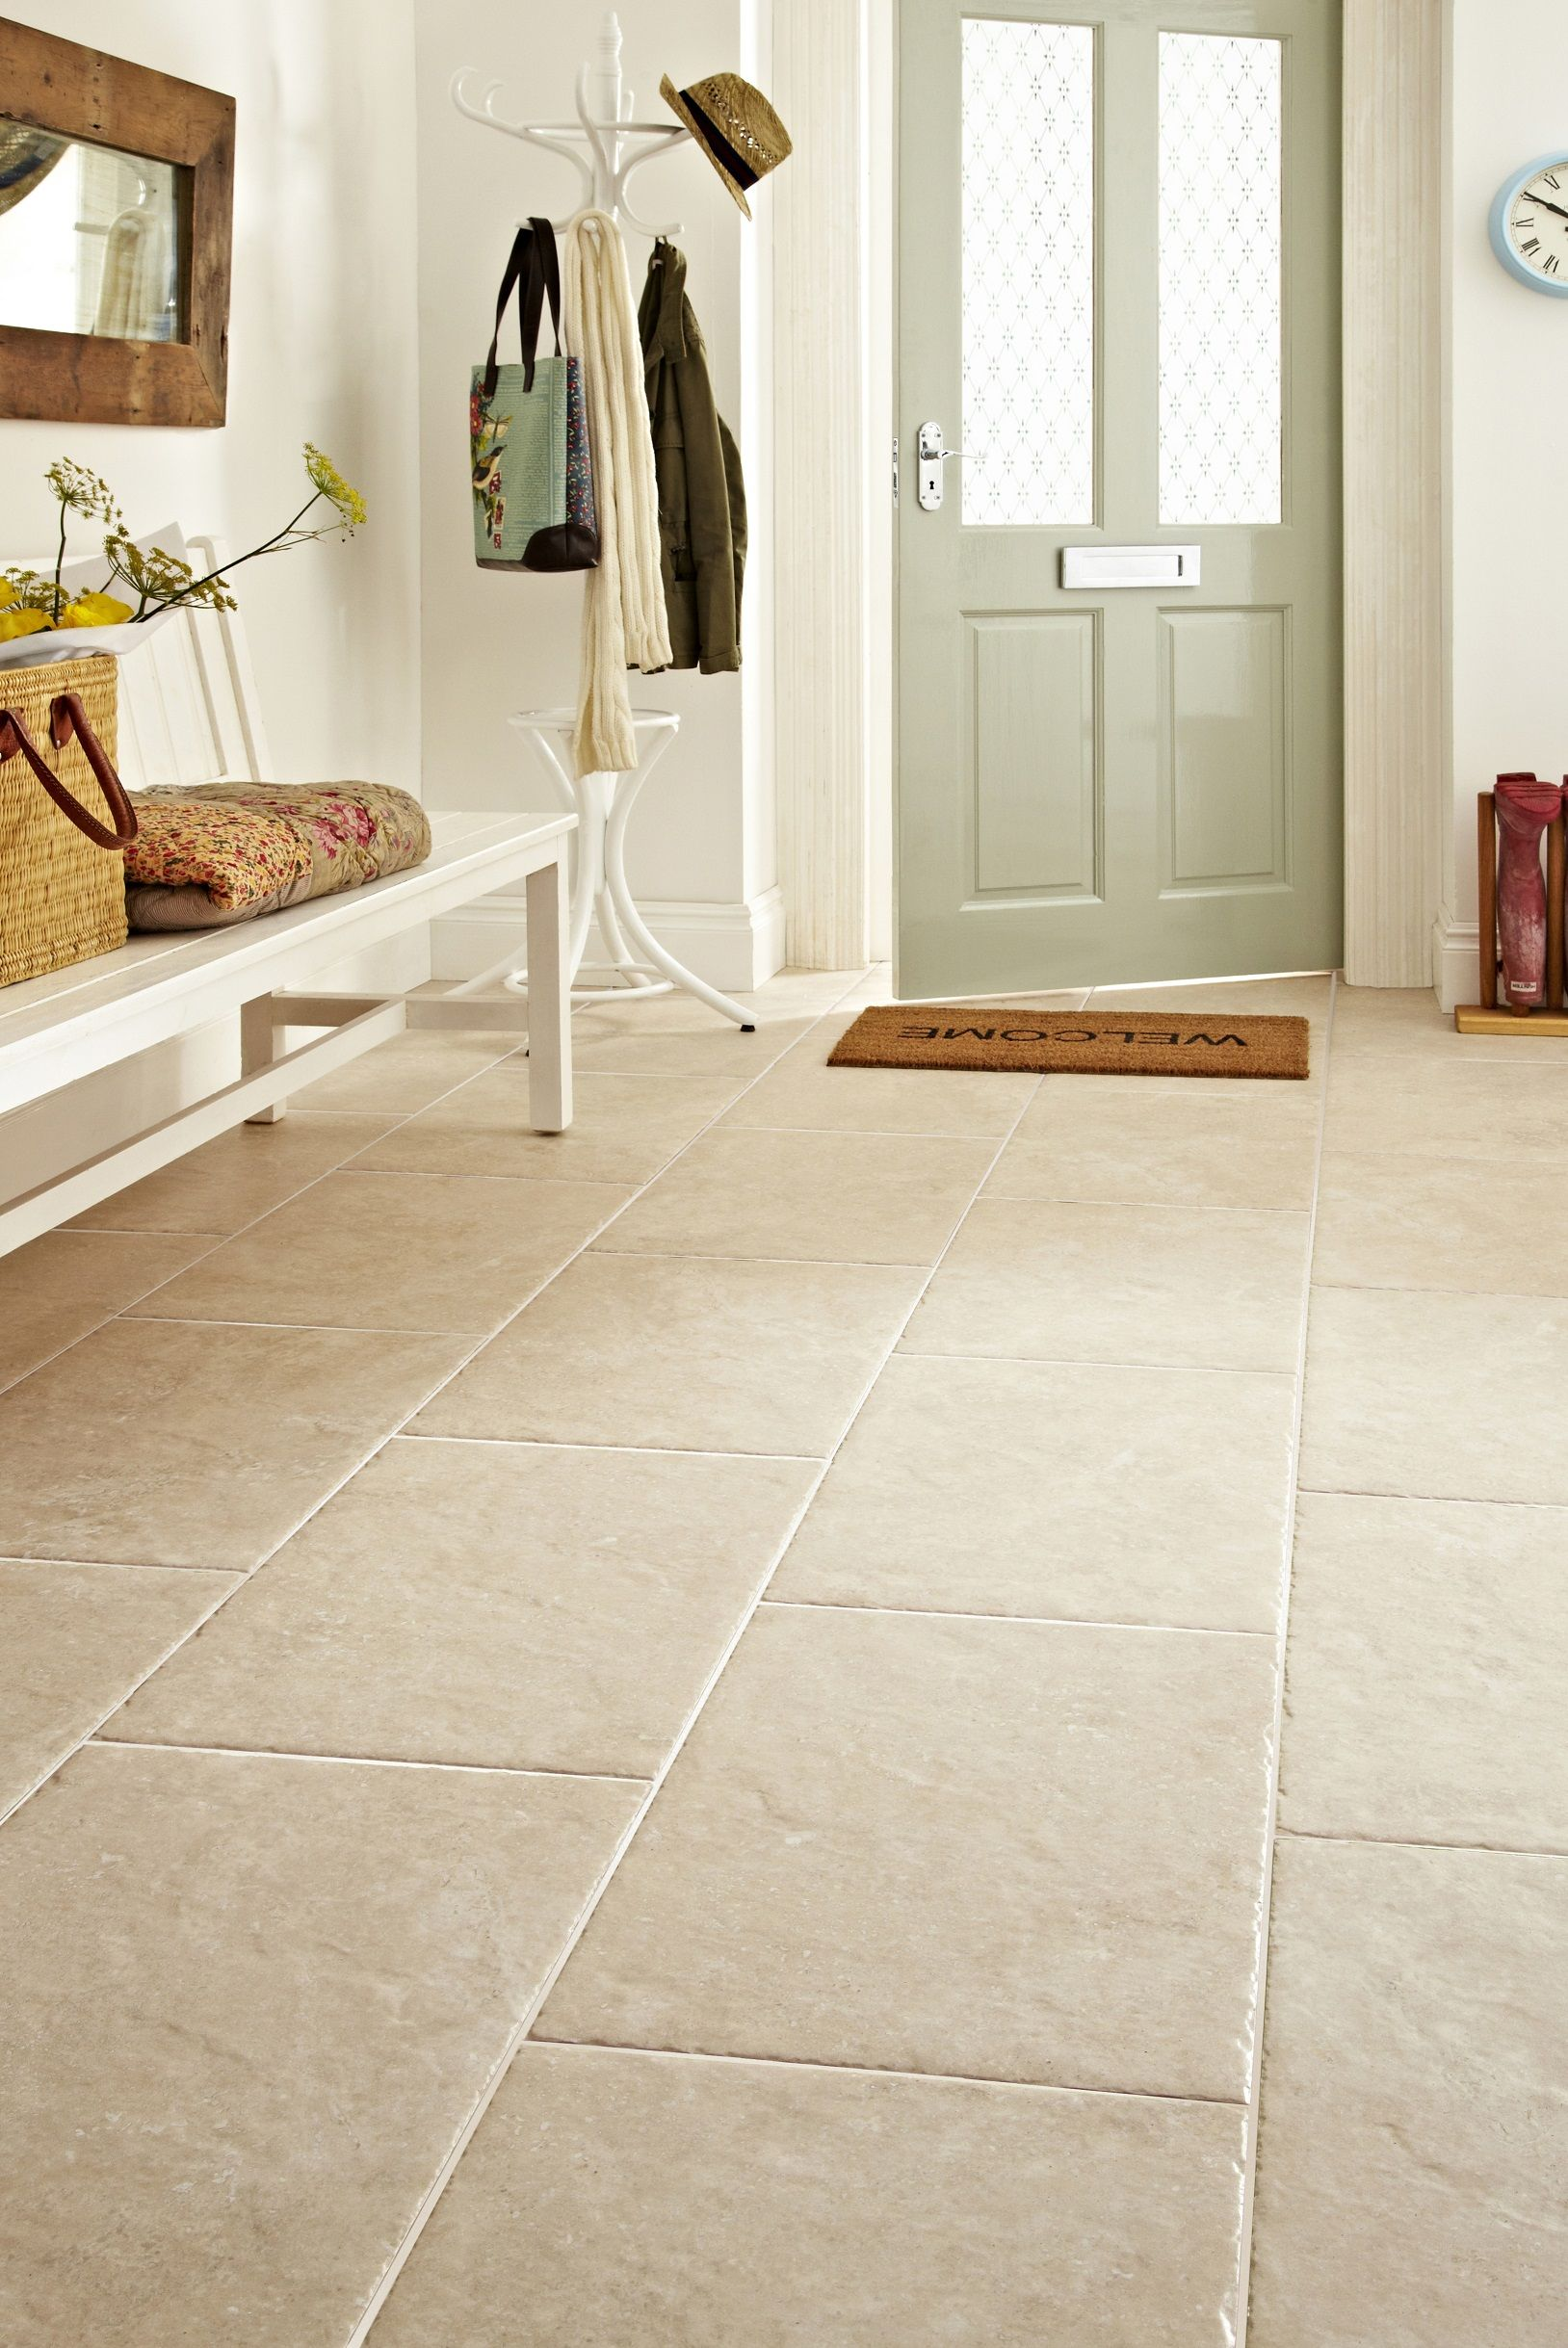 Kitchen Floor Materials Paris Grey Limestone Tiles For A Durable Kitchen Floor Light Grey